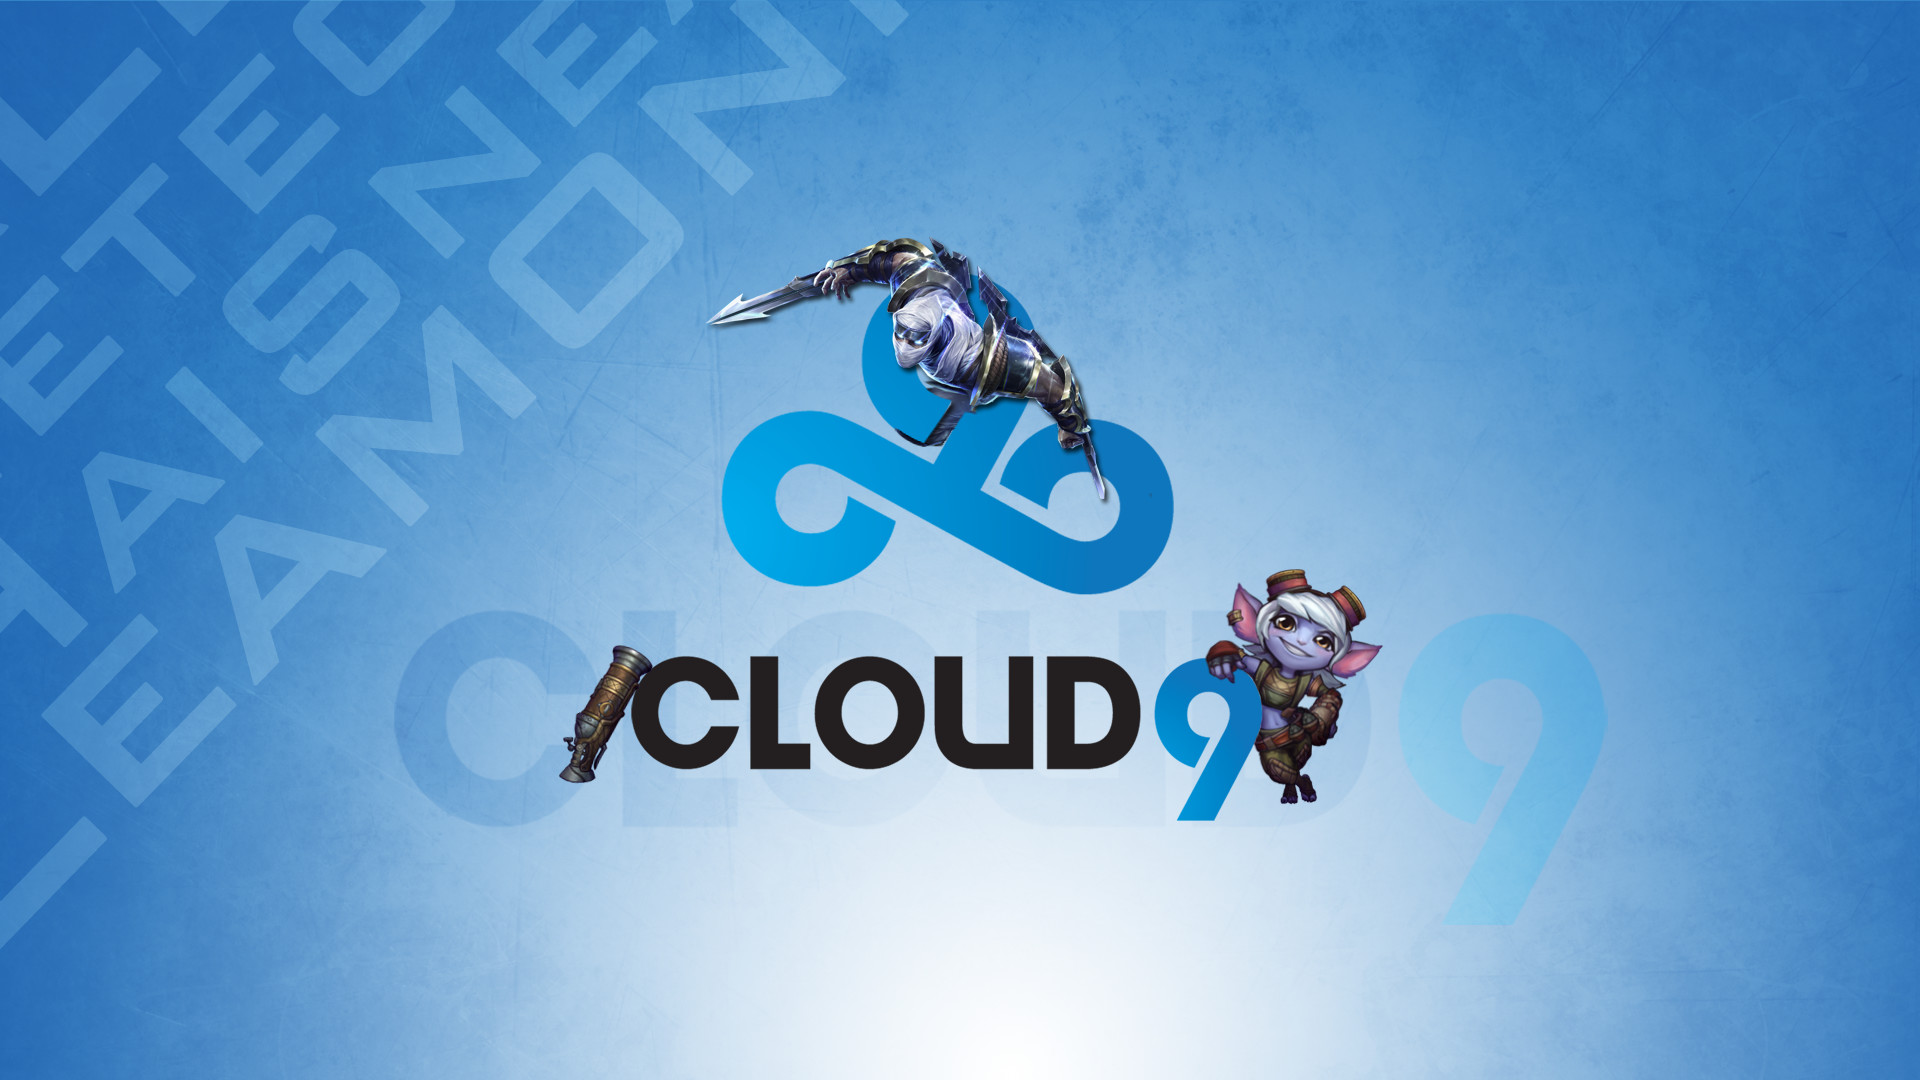 Cloud 9 Wallpaper by TheRempton Cloud 9 Wallpaper by TheRempton